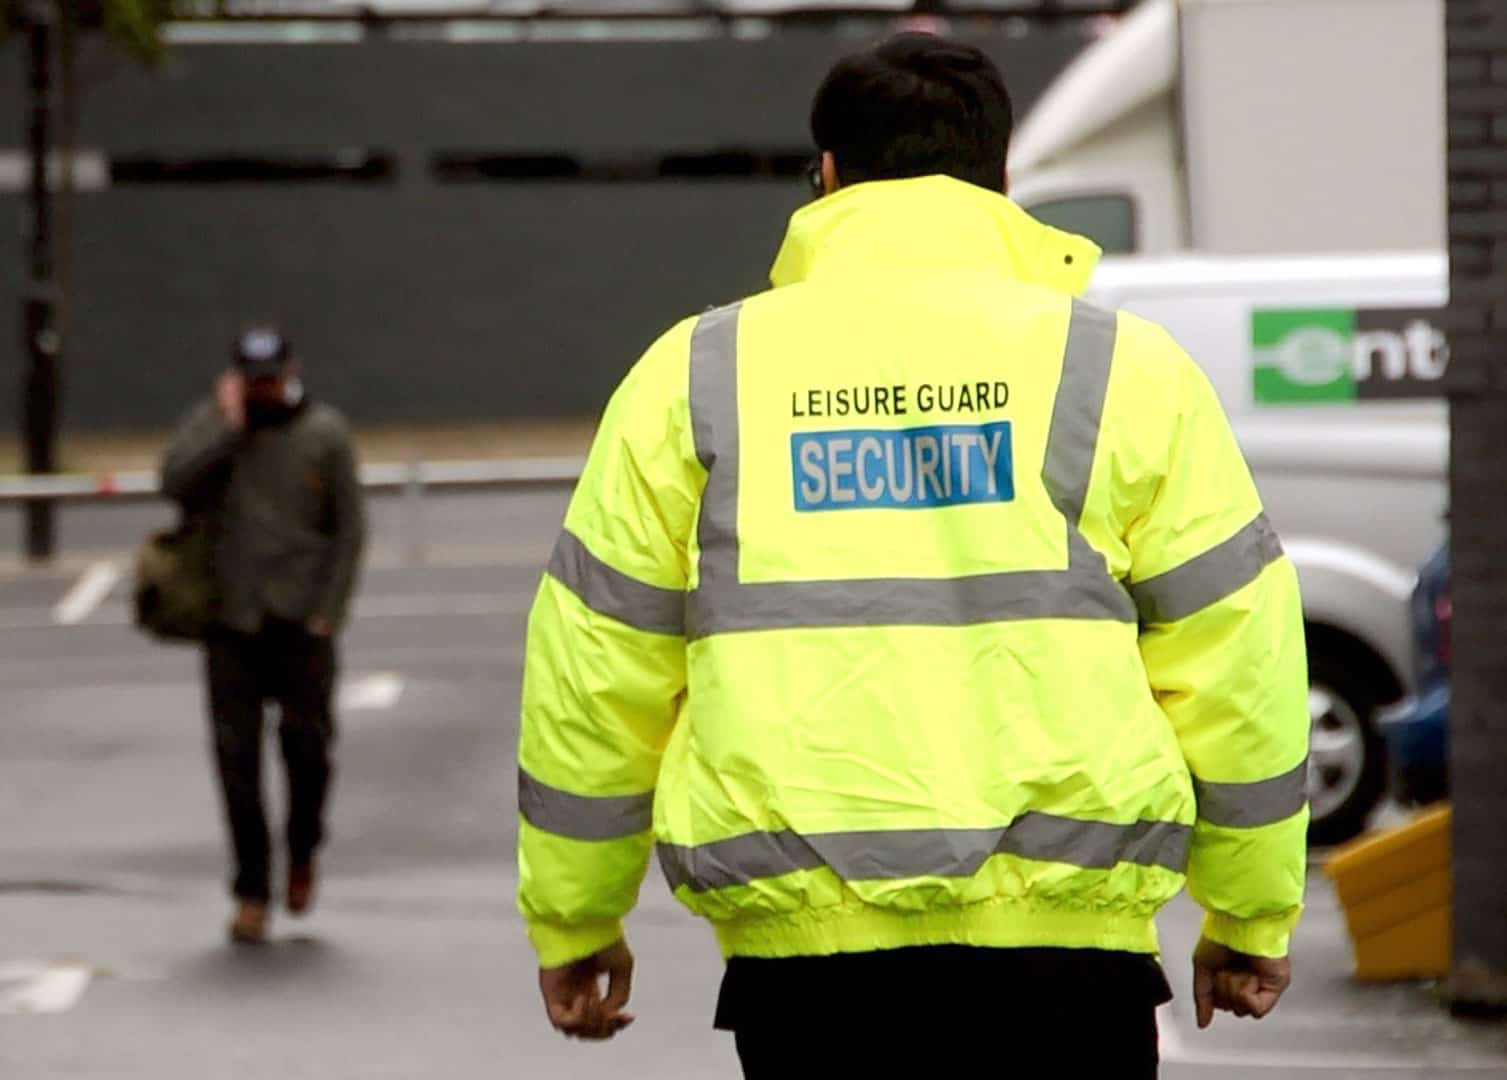 LGS guard in hivis walking towards person